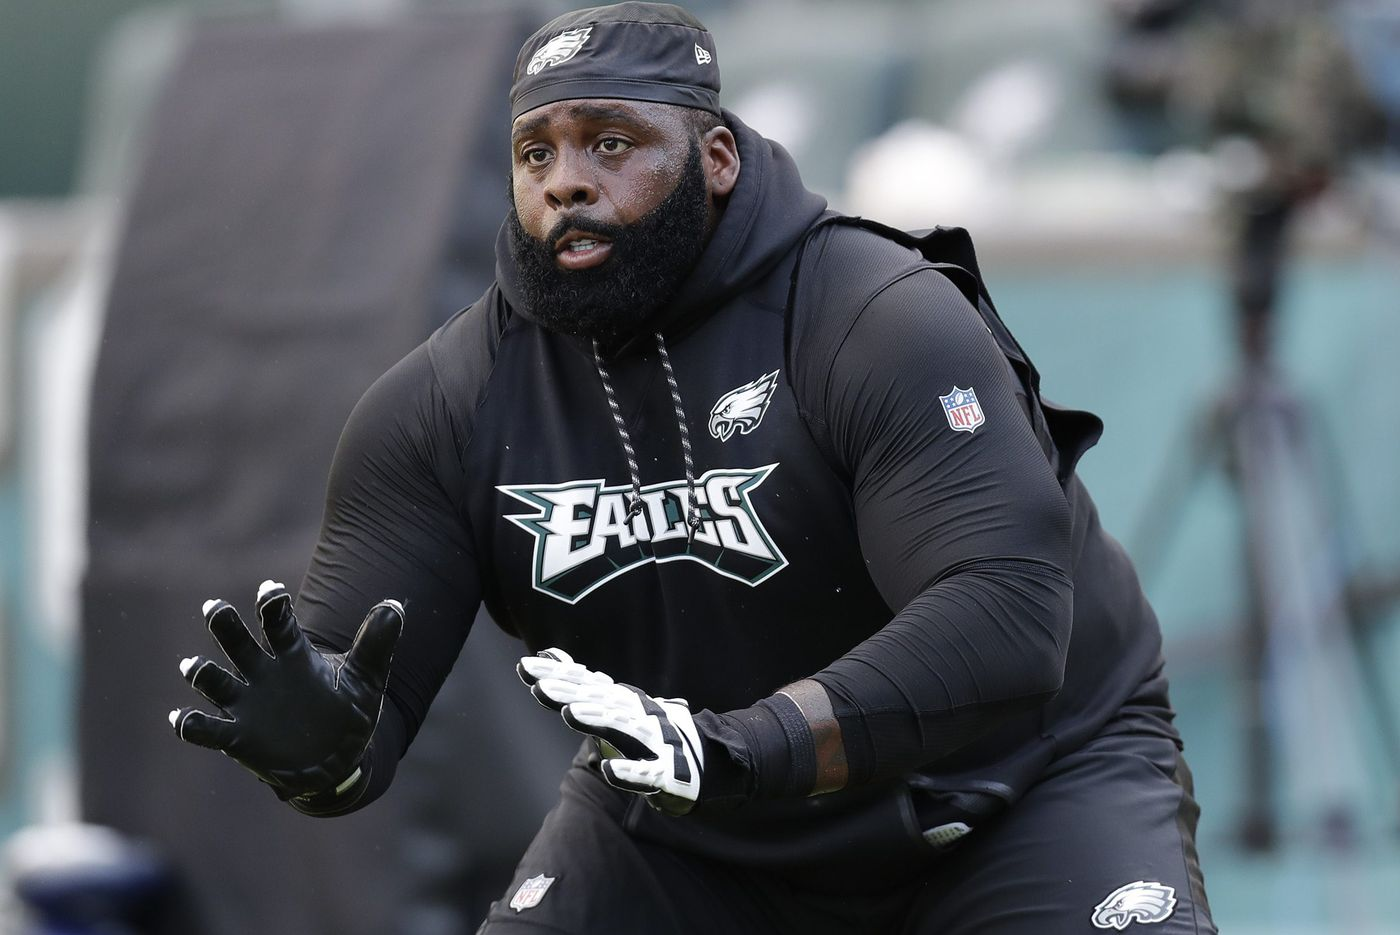 Eagles' Doug Pederson: No need to give Jason Peters time off